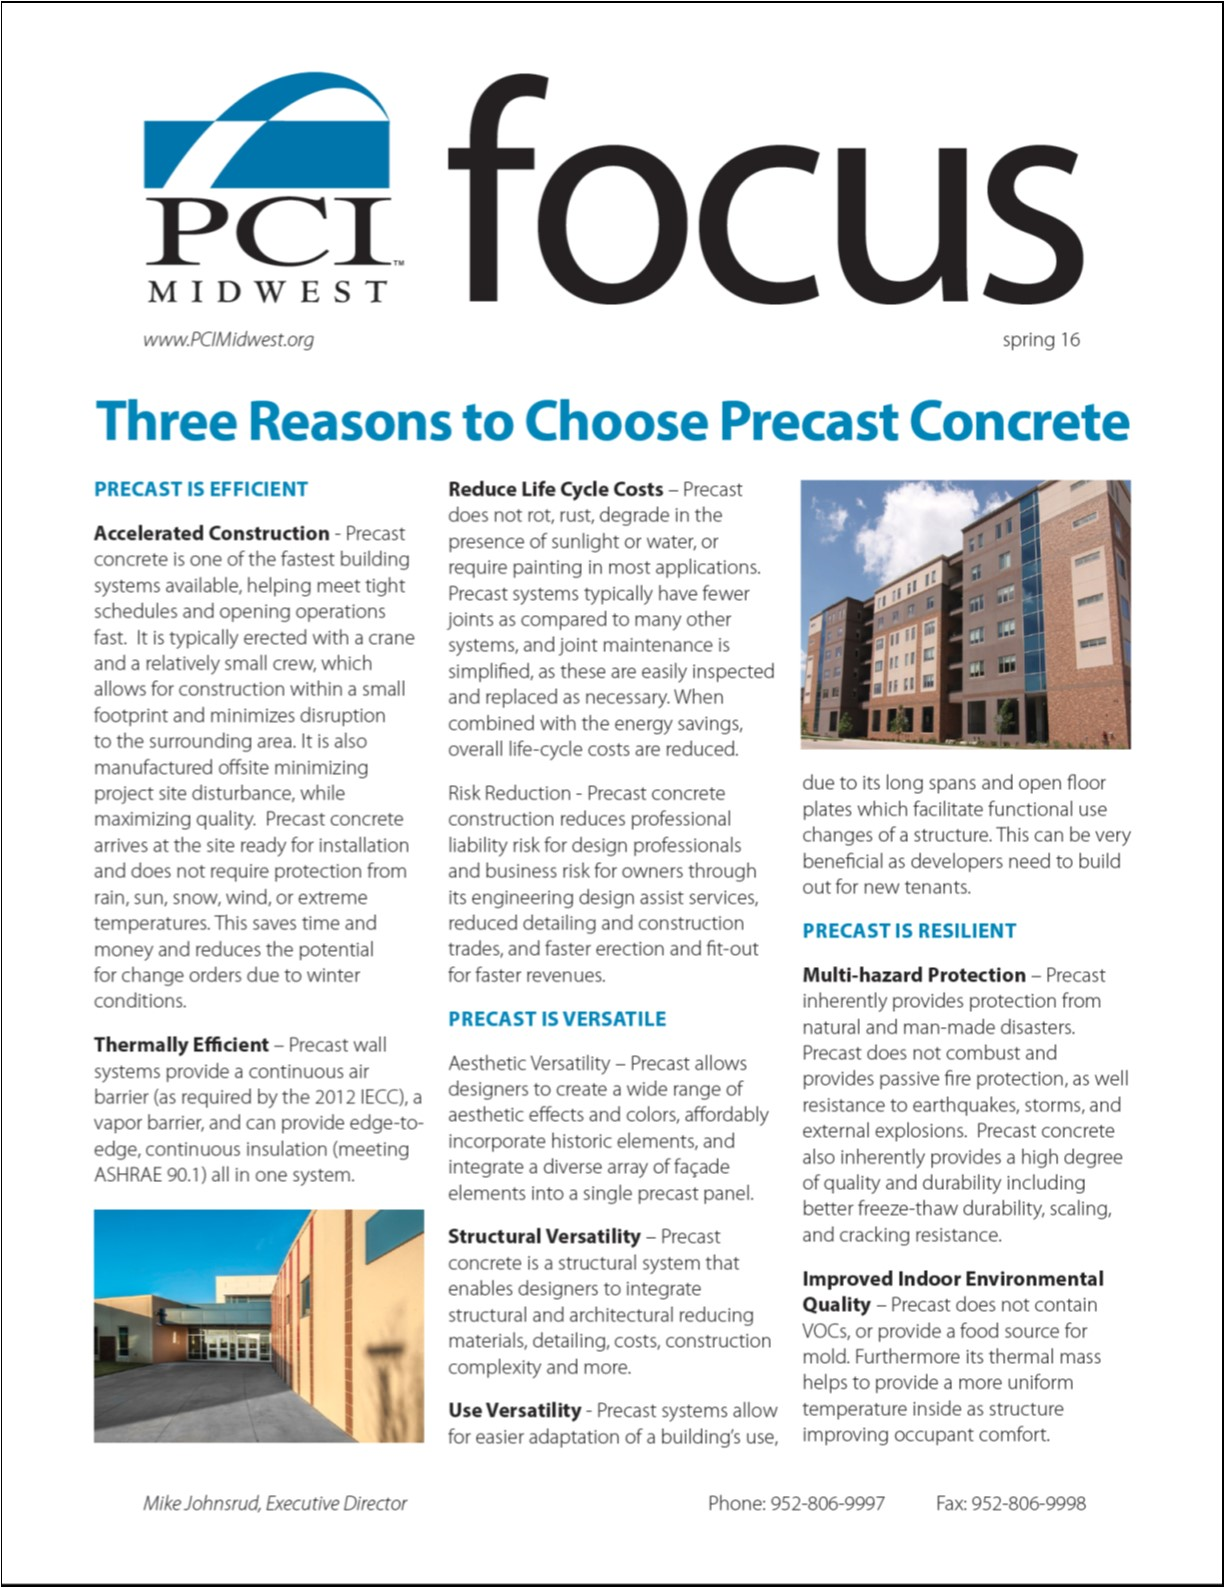 1Q 2016 PCI Midwest Focus Newsletter.jpg